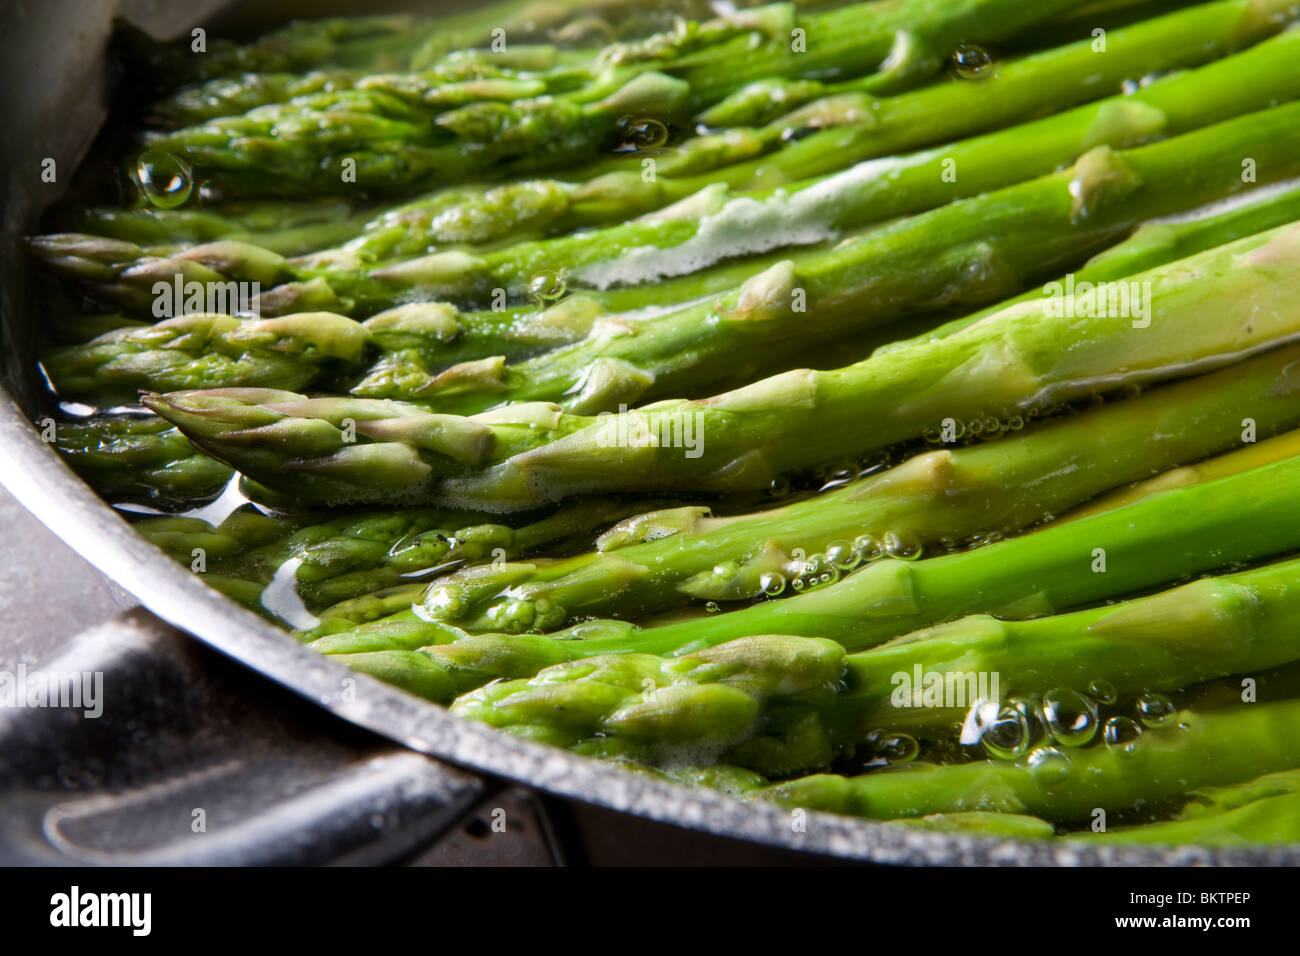 asparagus in pan of boiling water - Stock Image